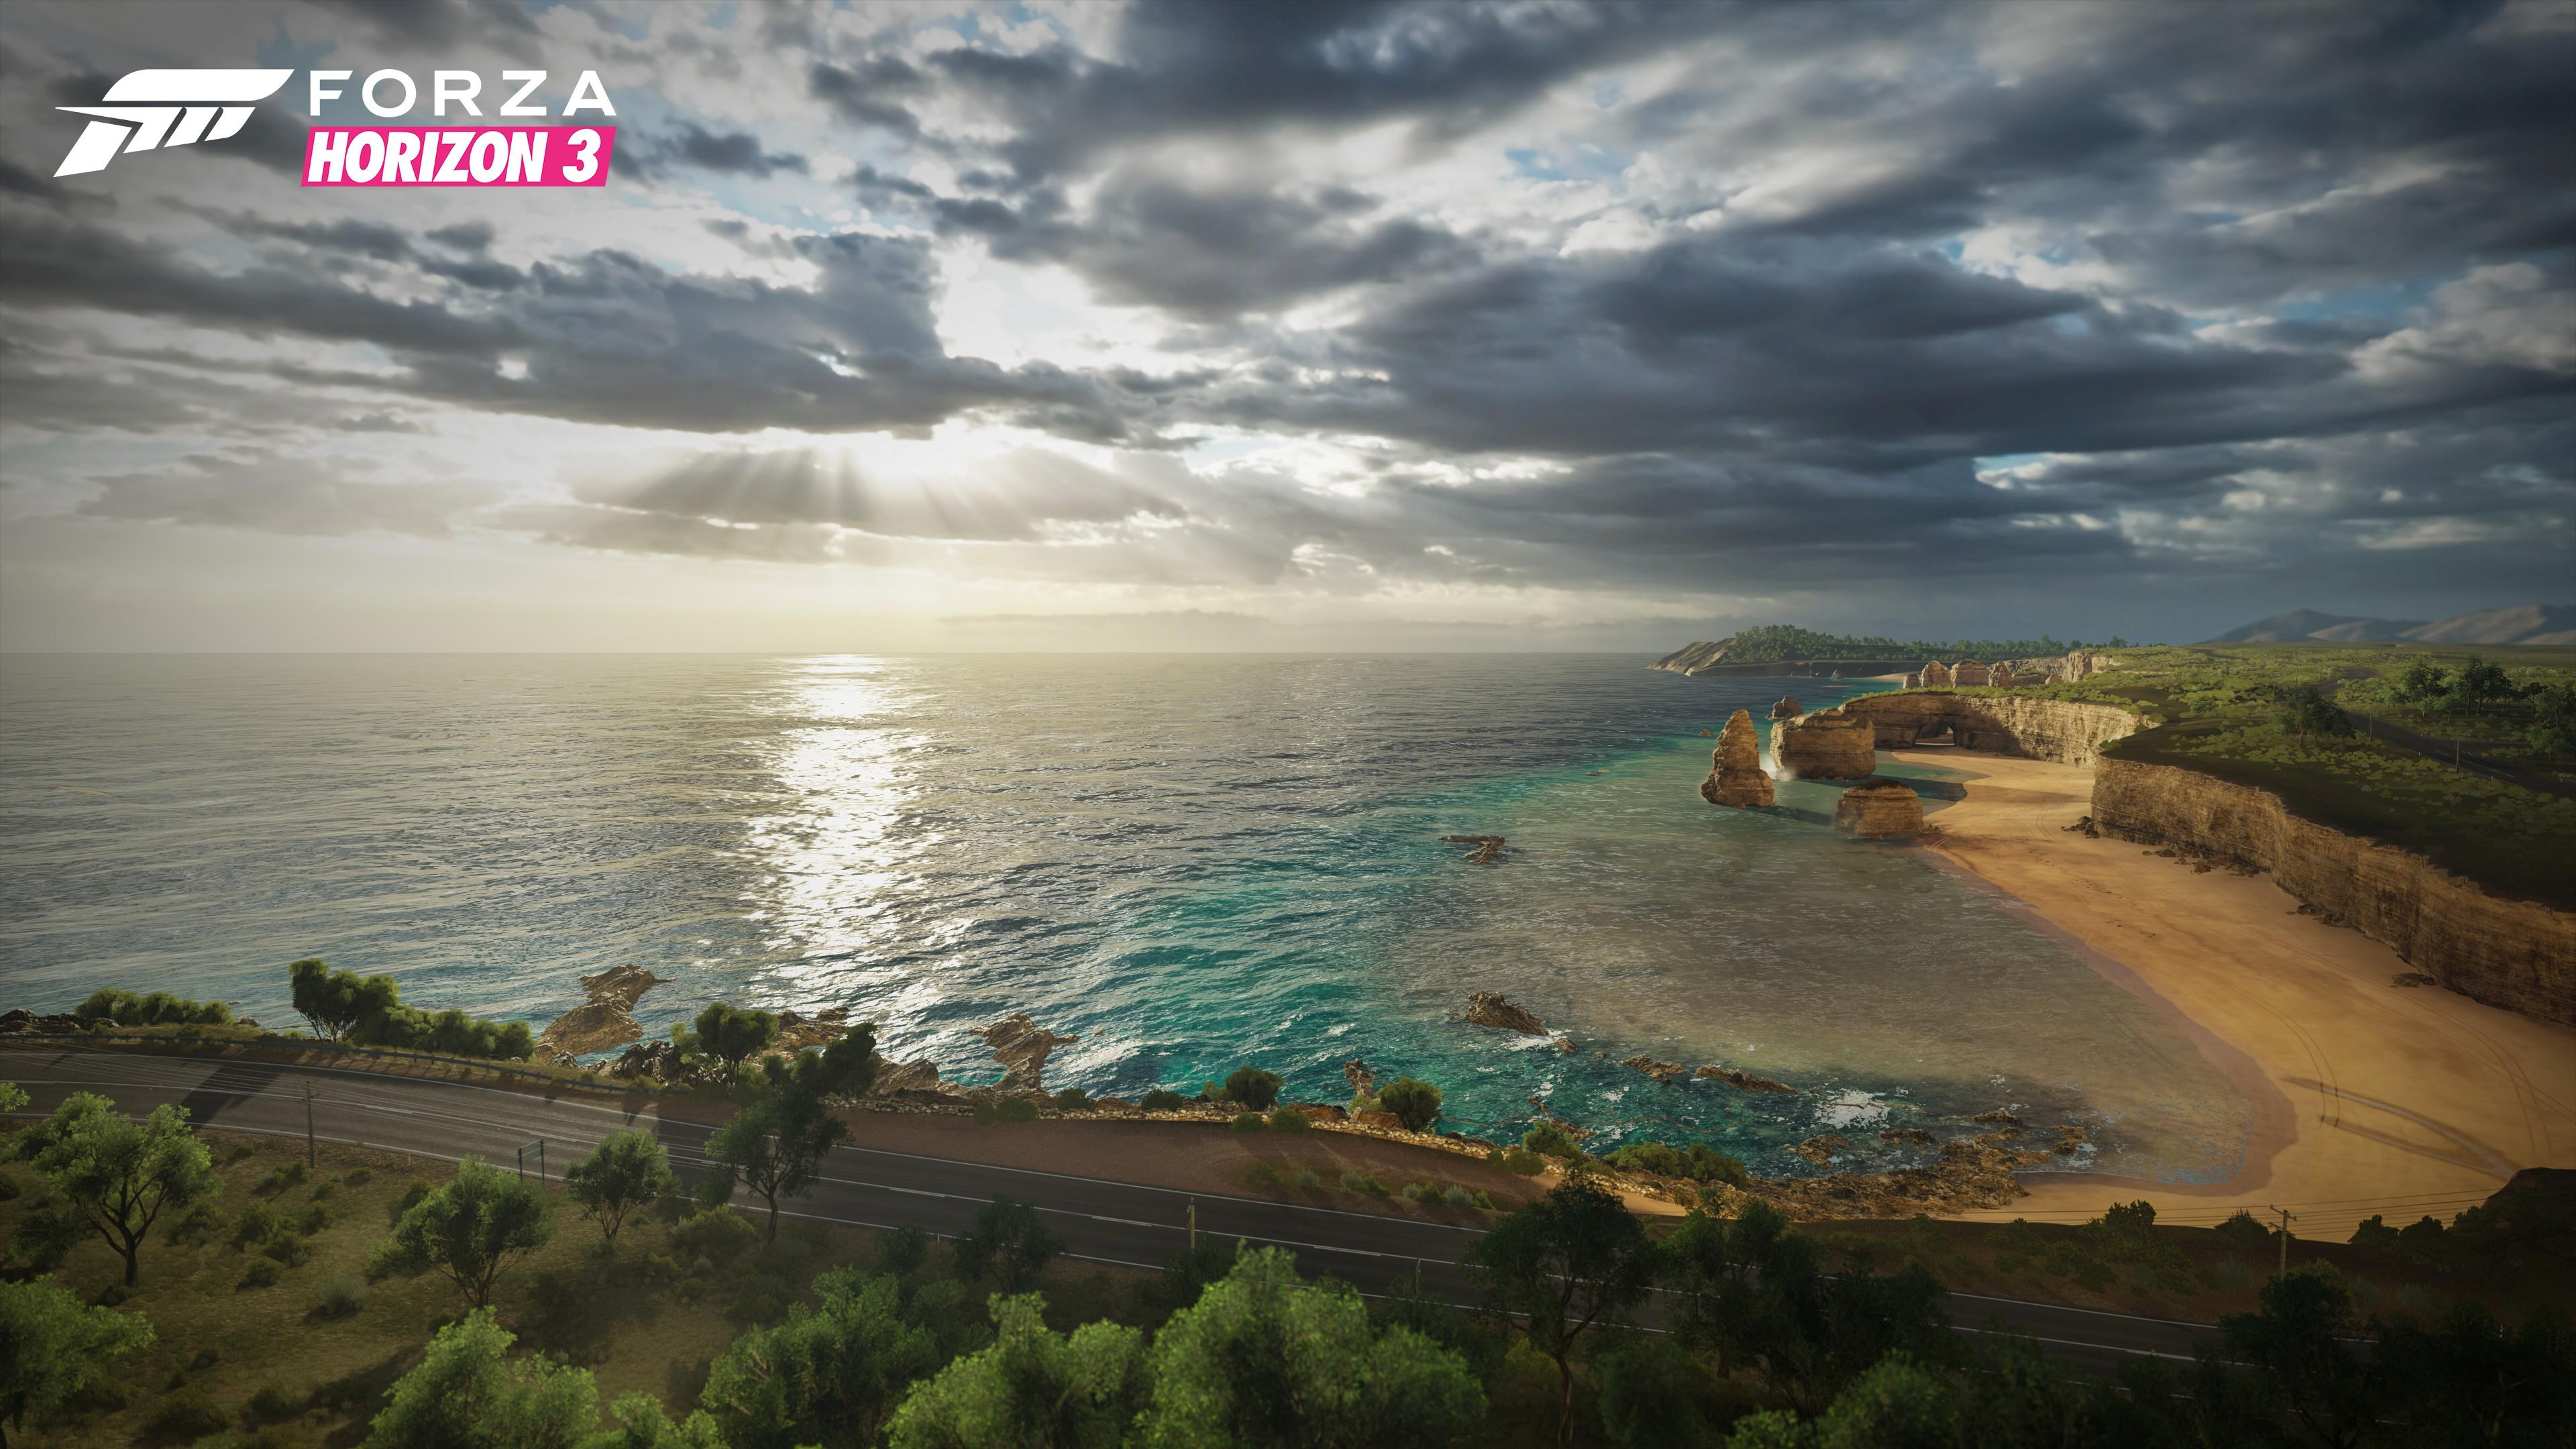 forza-horizon-3-screenshot- (8)